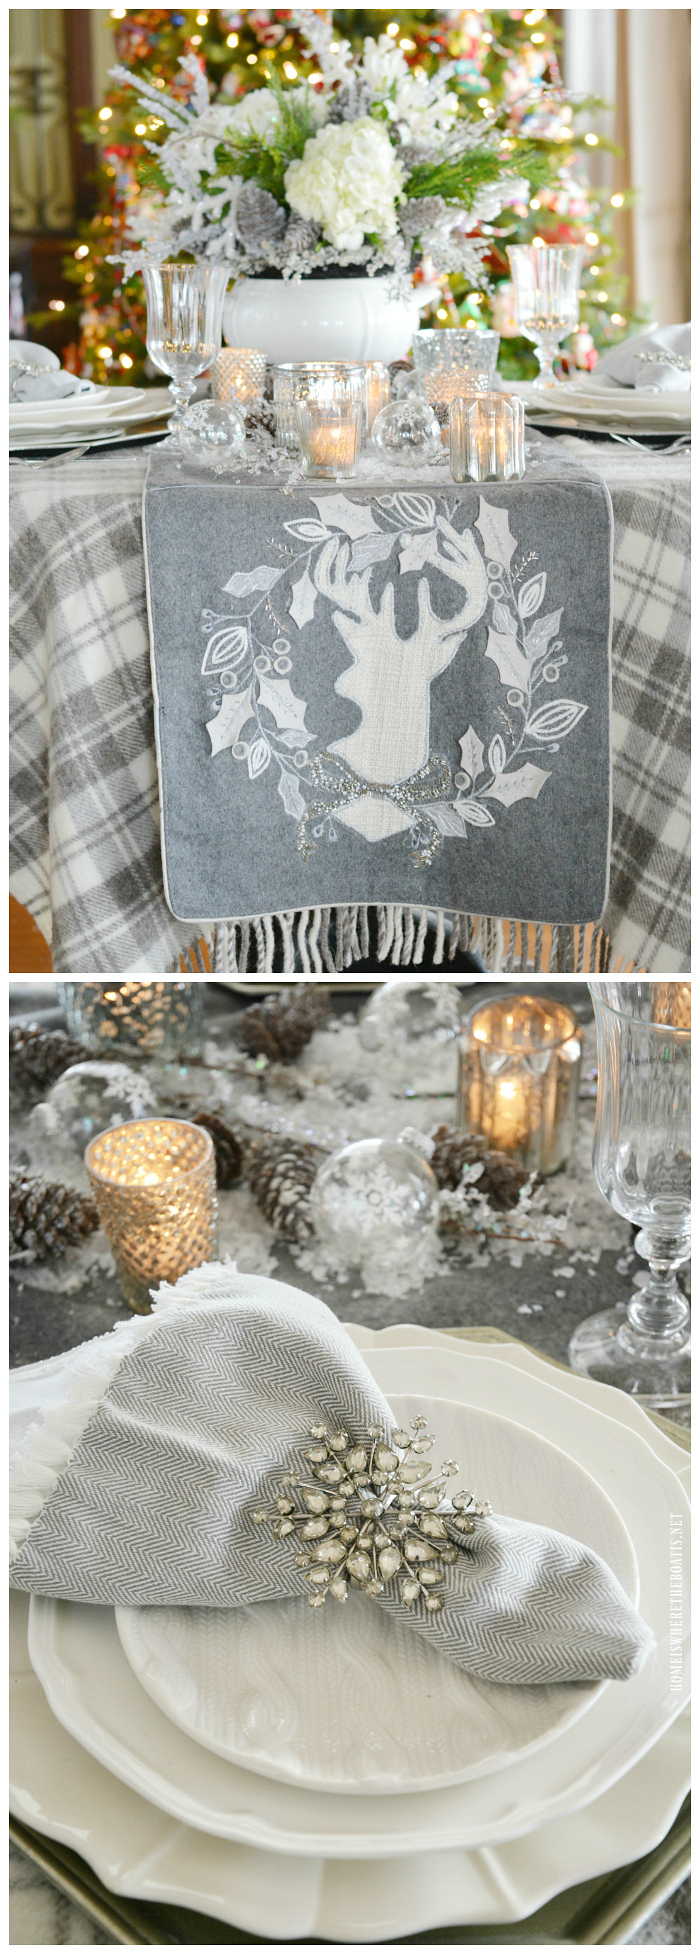 White Christmas flower arrangement and tablescapes with reindeer runner | ©homeiswheretheboatis.net #tablescape #christmas #winter #whitechristmas